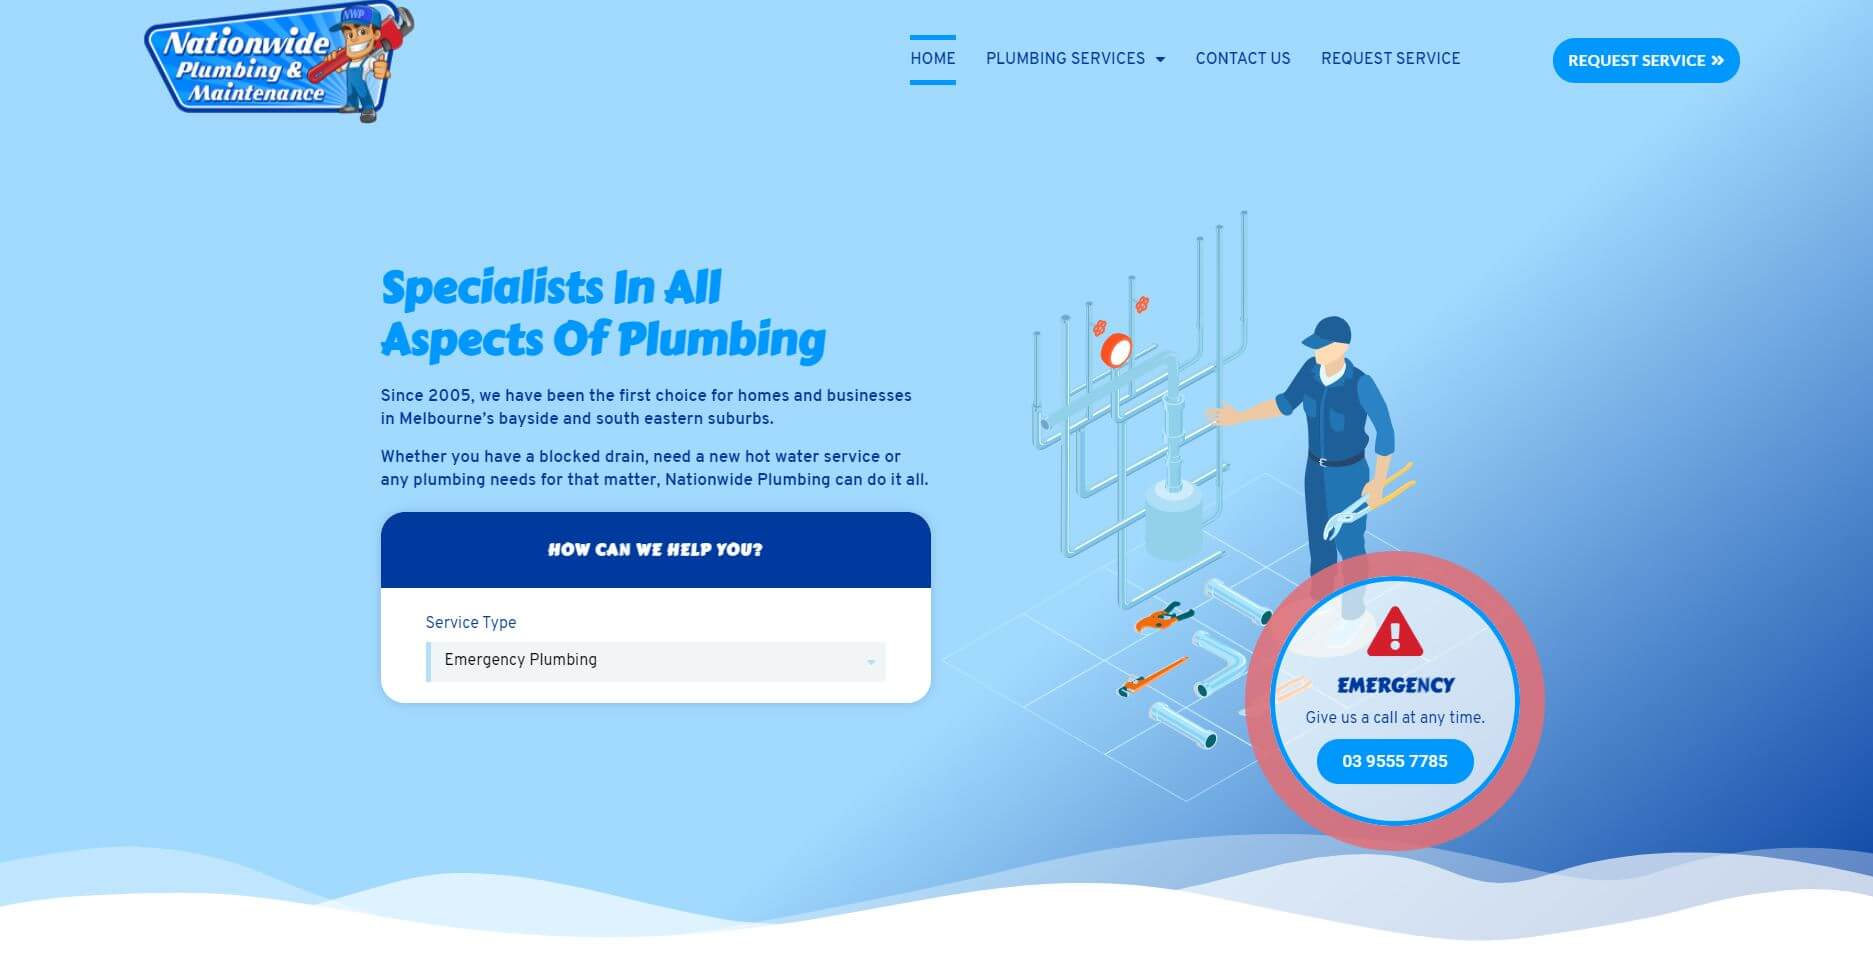 Nationwide Plumbing & Maintenance